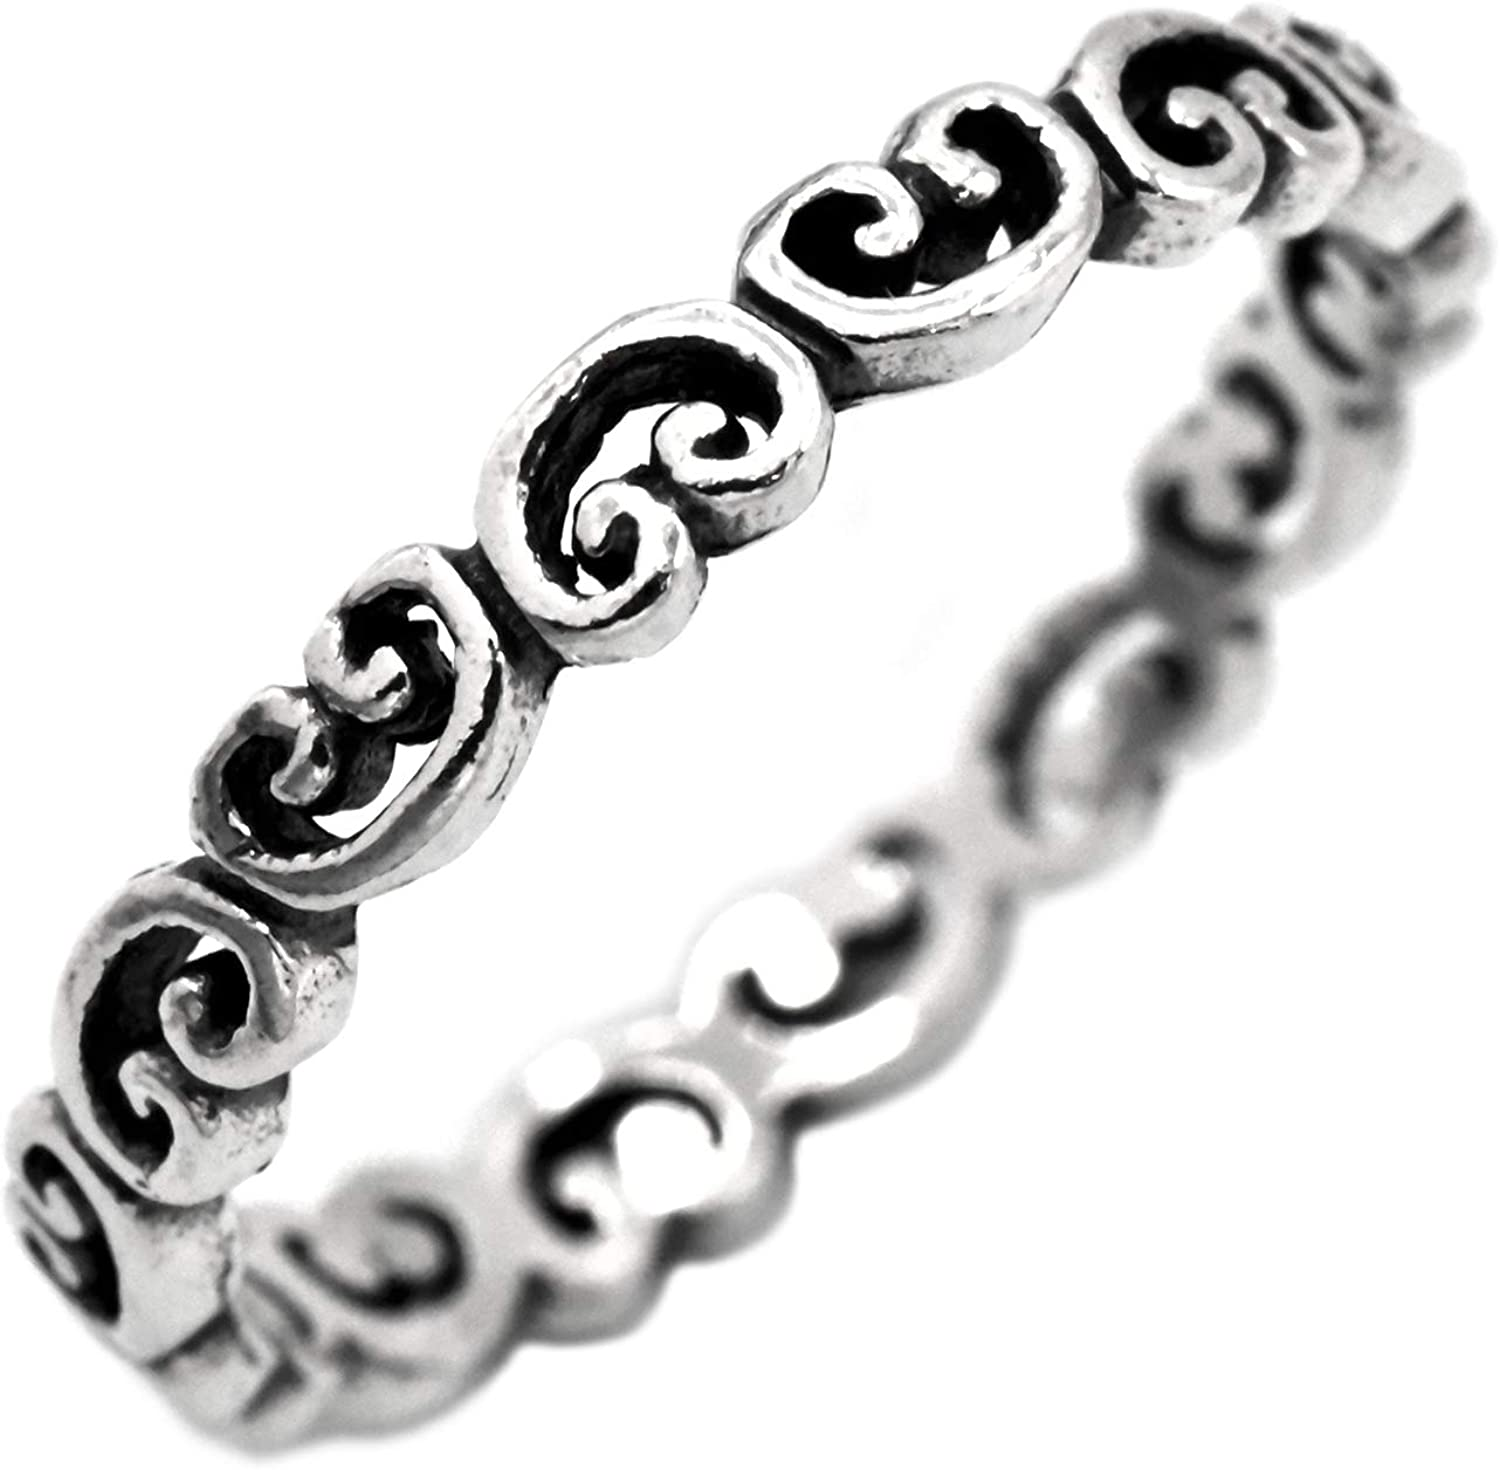 Filigree Bargain sale Heart Eternity Band Oxidized Spring new work Sterling Vintag 925 Silver